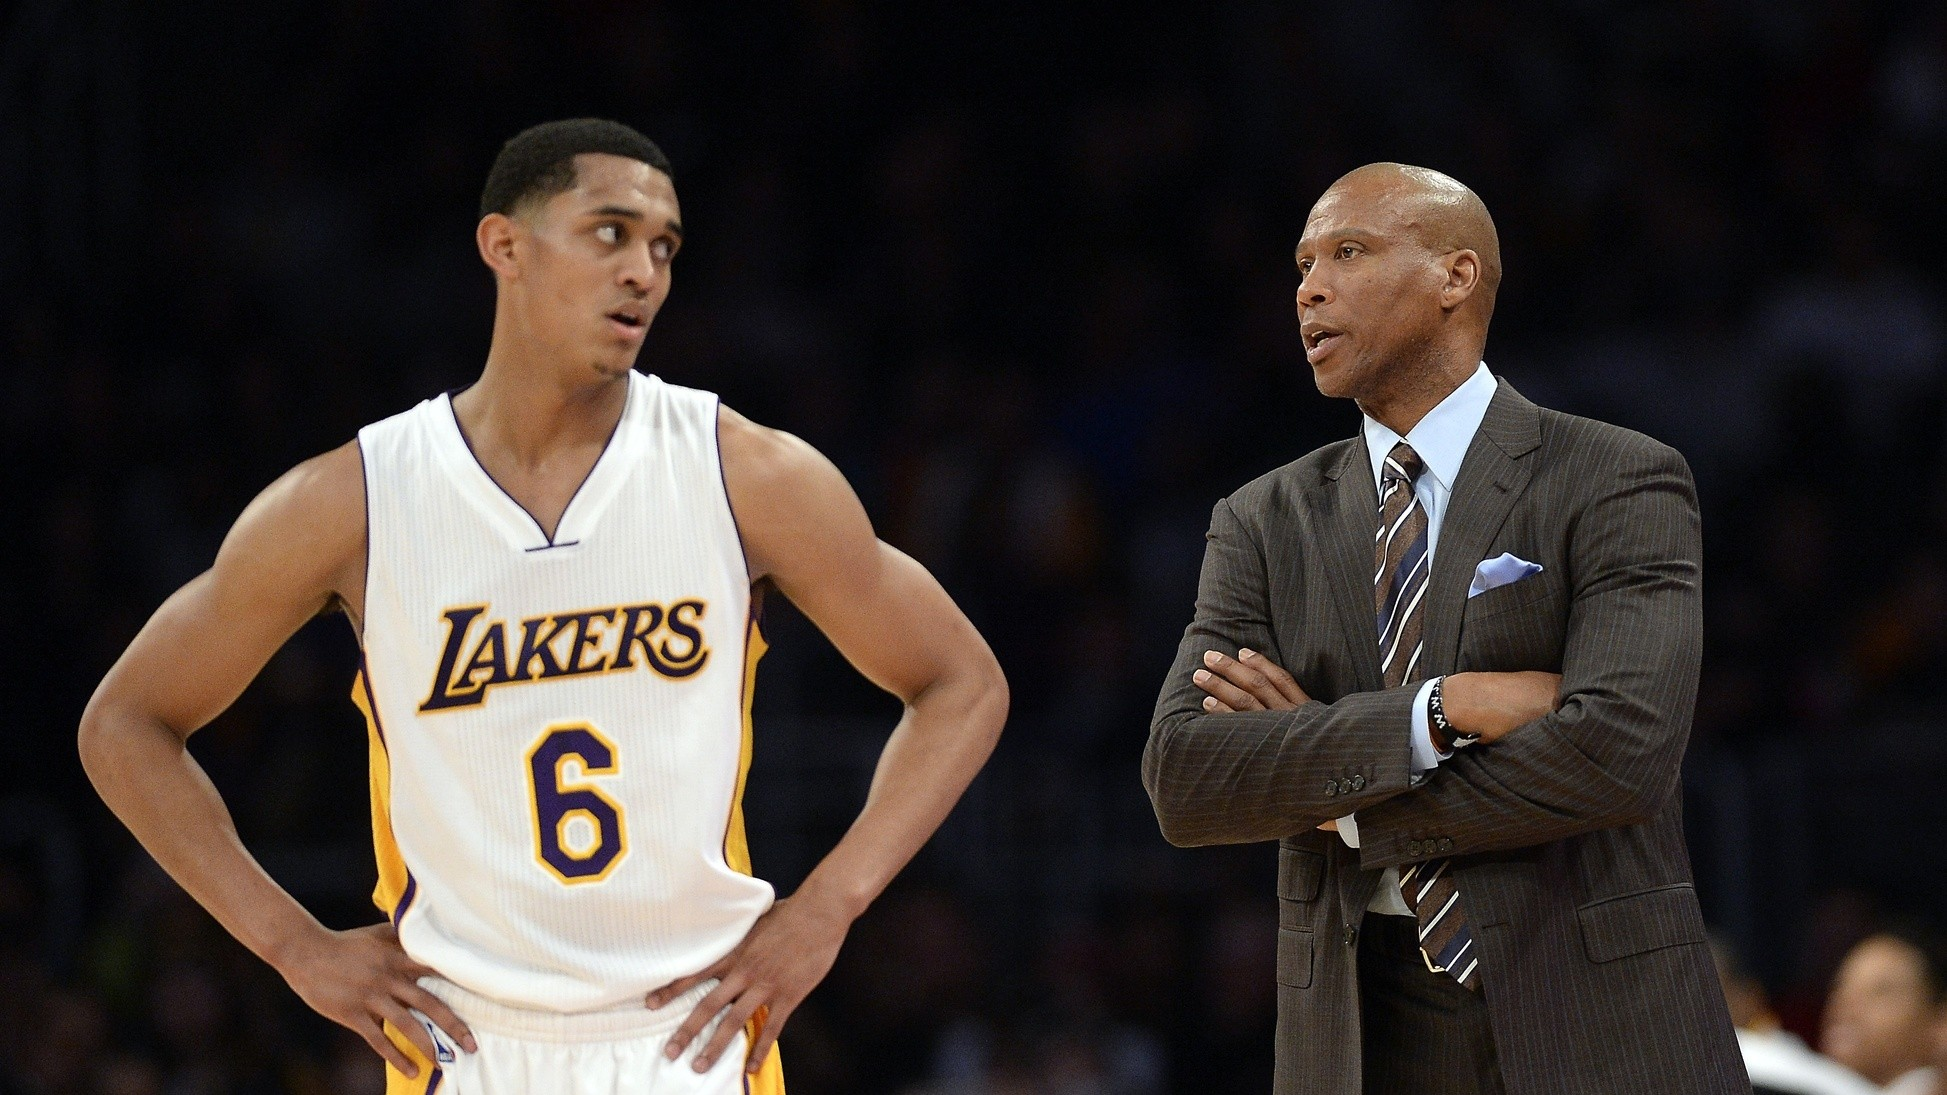 The Knicks and Lakers Coaching Rumor Mills: COOKIES 021 with John Barrett and Andrew Kuo